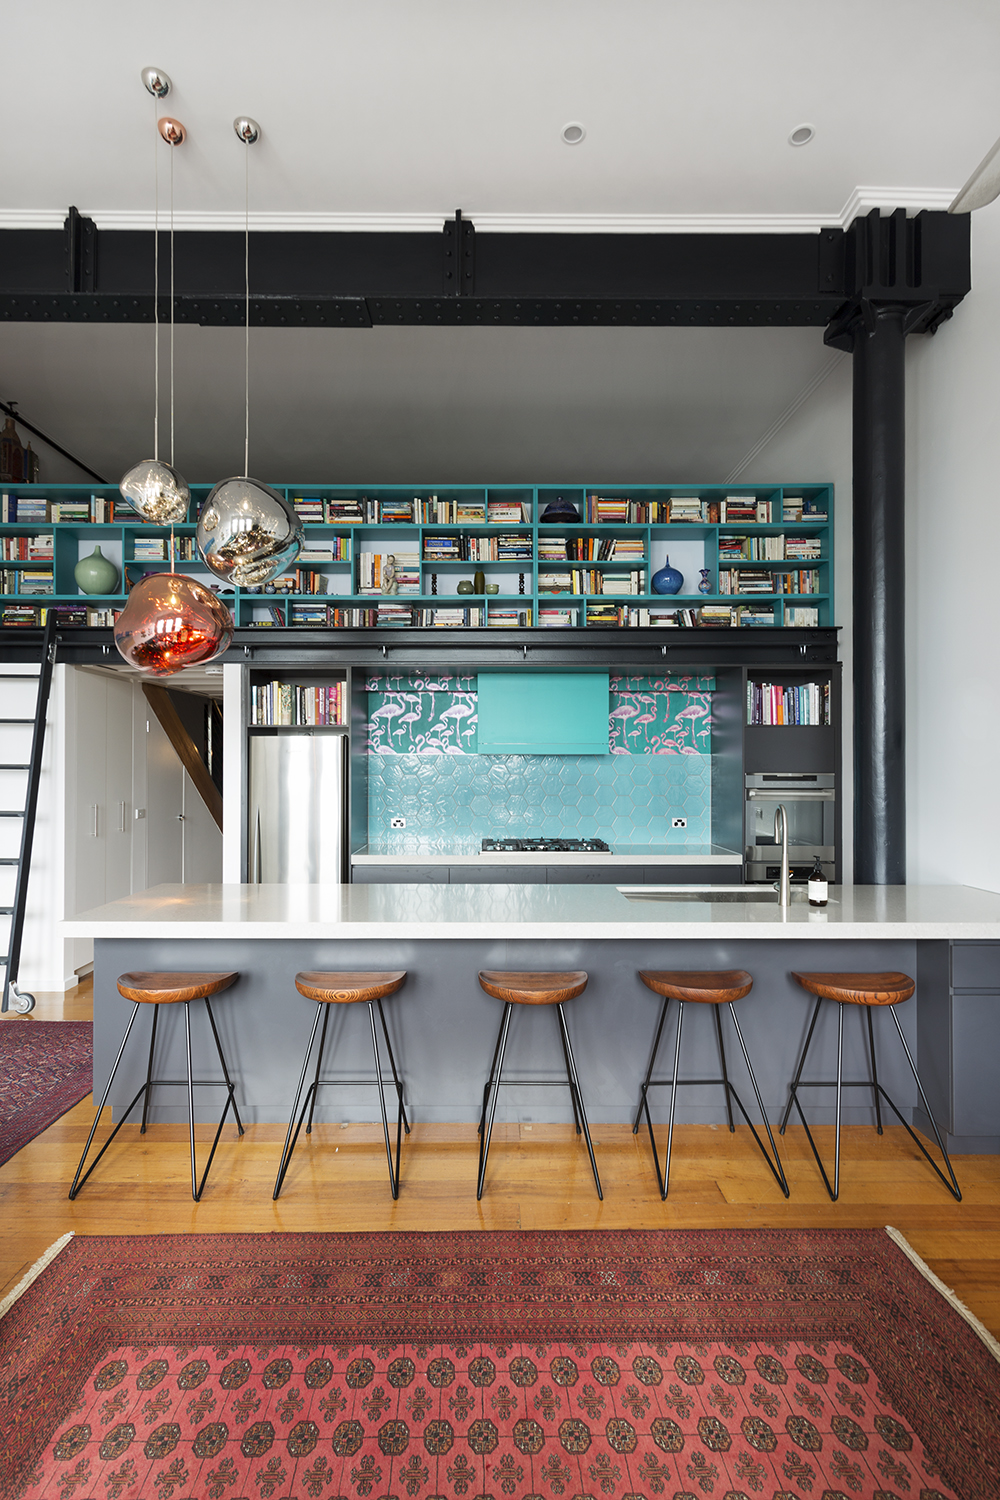 Kitchen designer and interior designer Melbourne. Collingwood warehouse apartment renovation